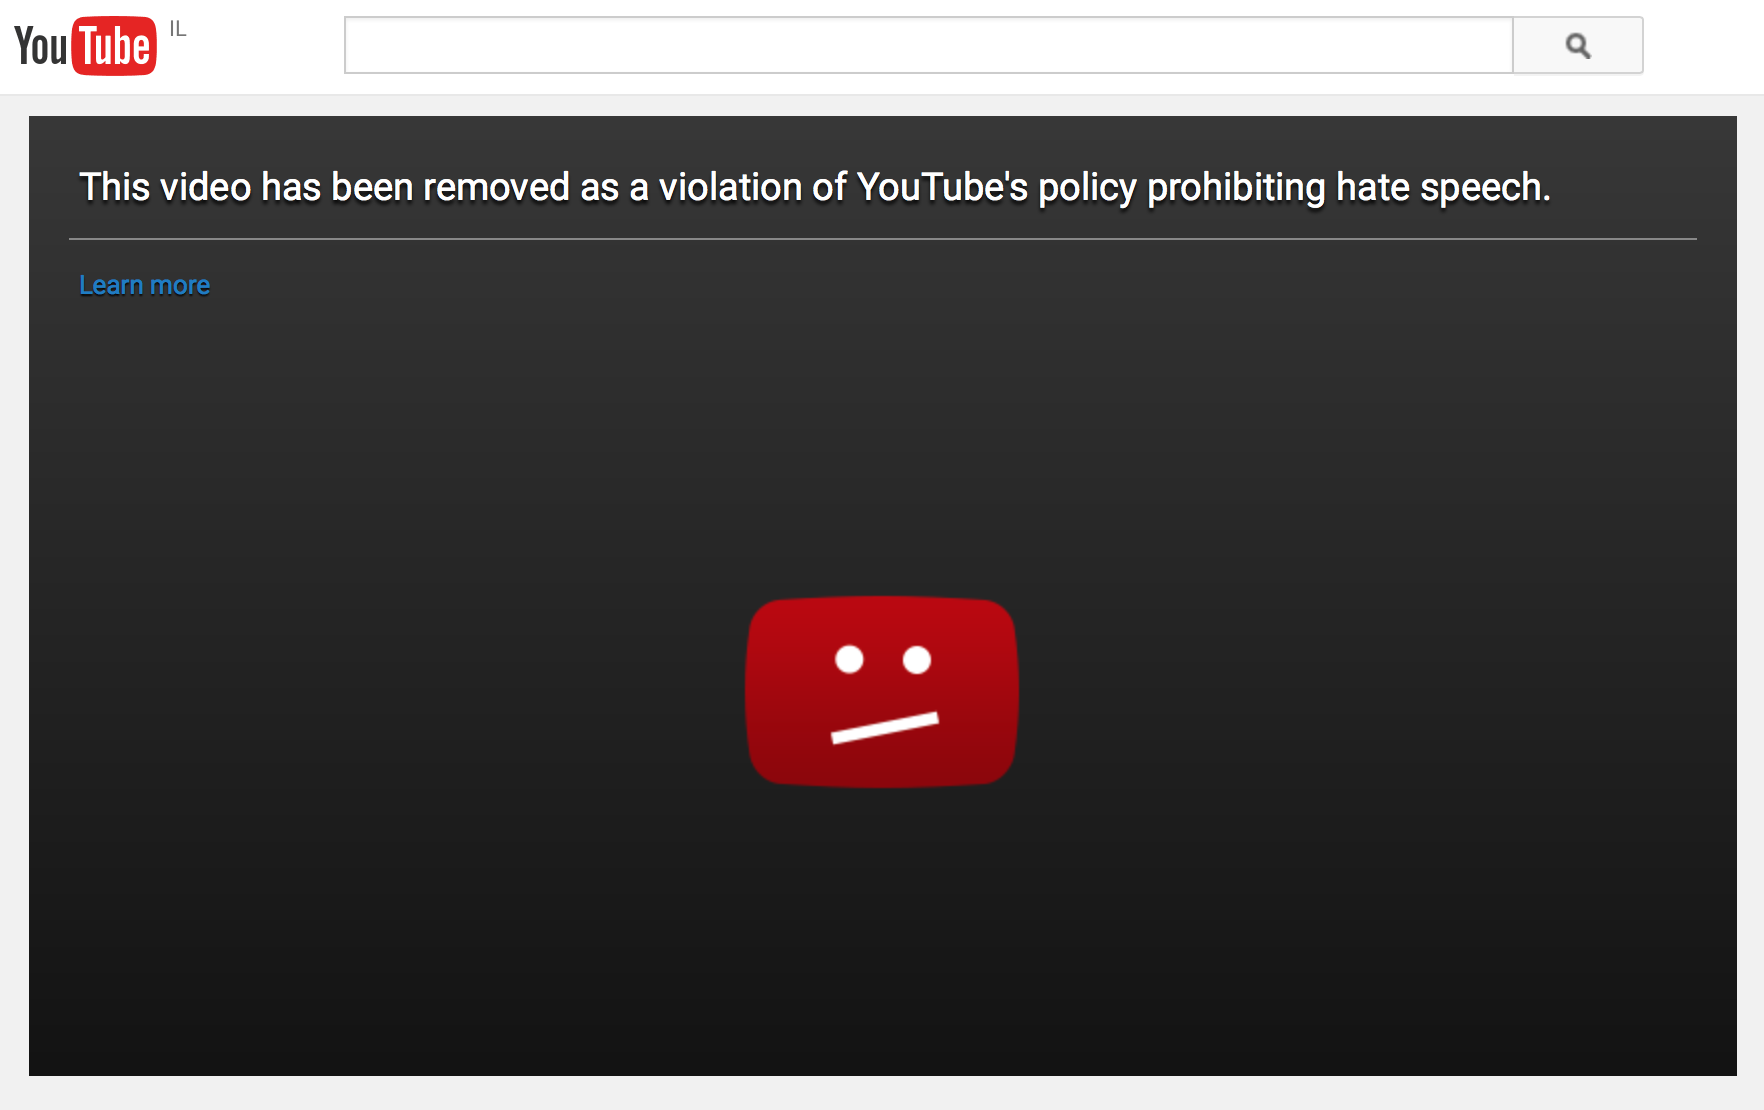 youtube_hate_speech_video_removed576e6e5e33d38